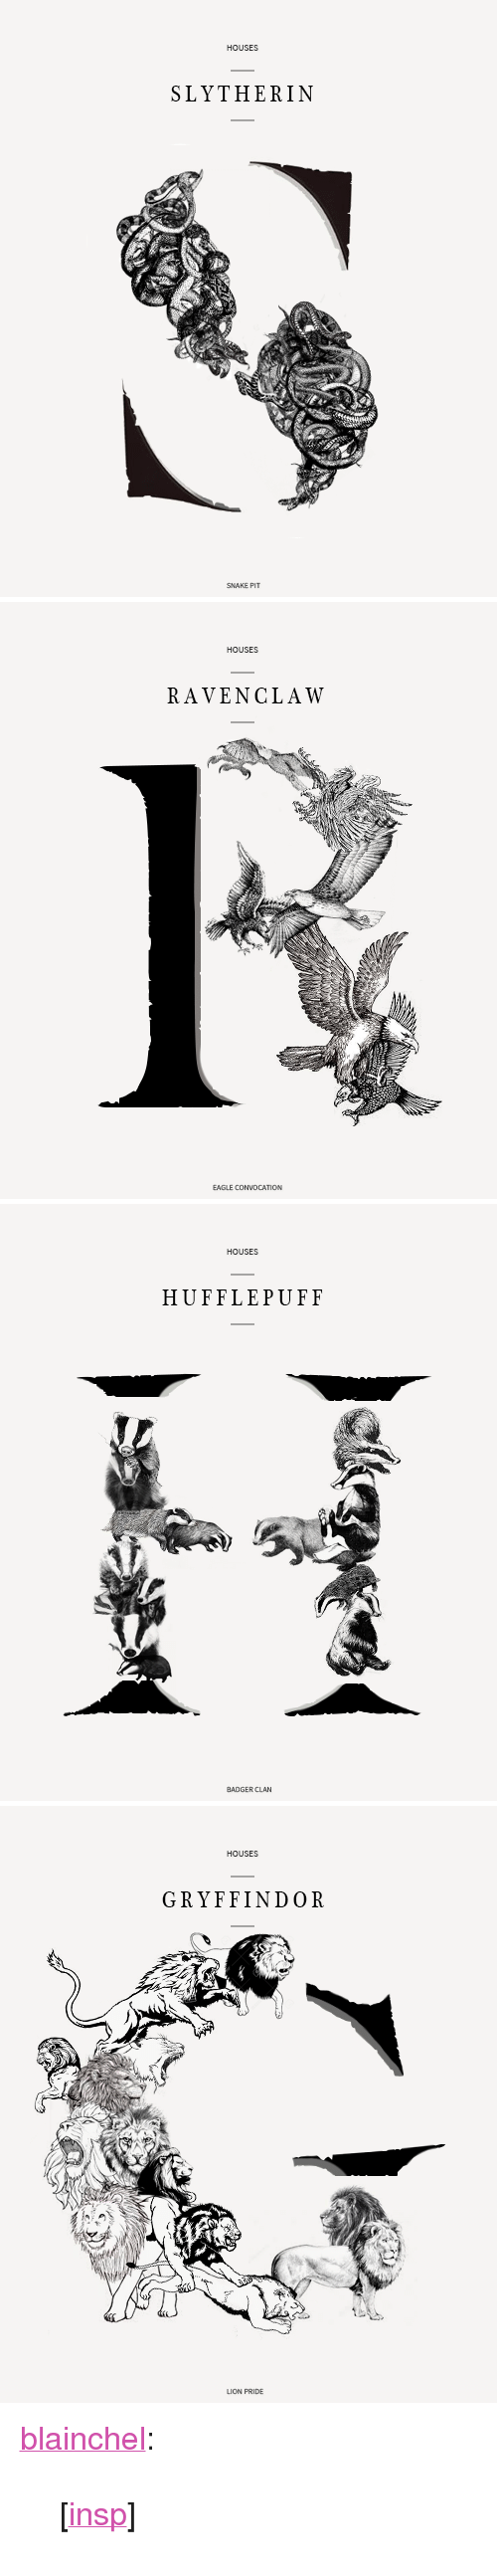 """ravenclaw: HOUSES  SLYTHERIN  SNAKE PIT   HOUSES  RAVENCLAW  EAGLE C   HOUSES  HUFFLEPUFF   HOUSES  GRYFFINDOR  LION PRIDE <p><a href=""""http://blainchel.tumblr.com/post/151985334564/insp"""" class=""""tumblr_blog"""" target=""""_blank"""">blainchel</a>:</p> <blockquote><p>[<a href=""""https://www.behance.net/gallery/16227881/Horse-%28Illustration%29"""" target=""""_blank"""">insp</a>]<br/></p></blockquote>"""